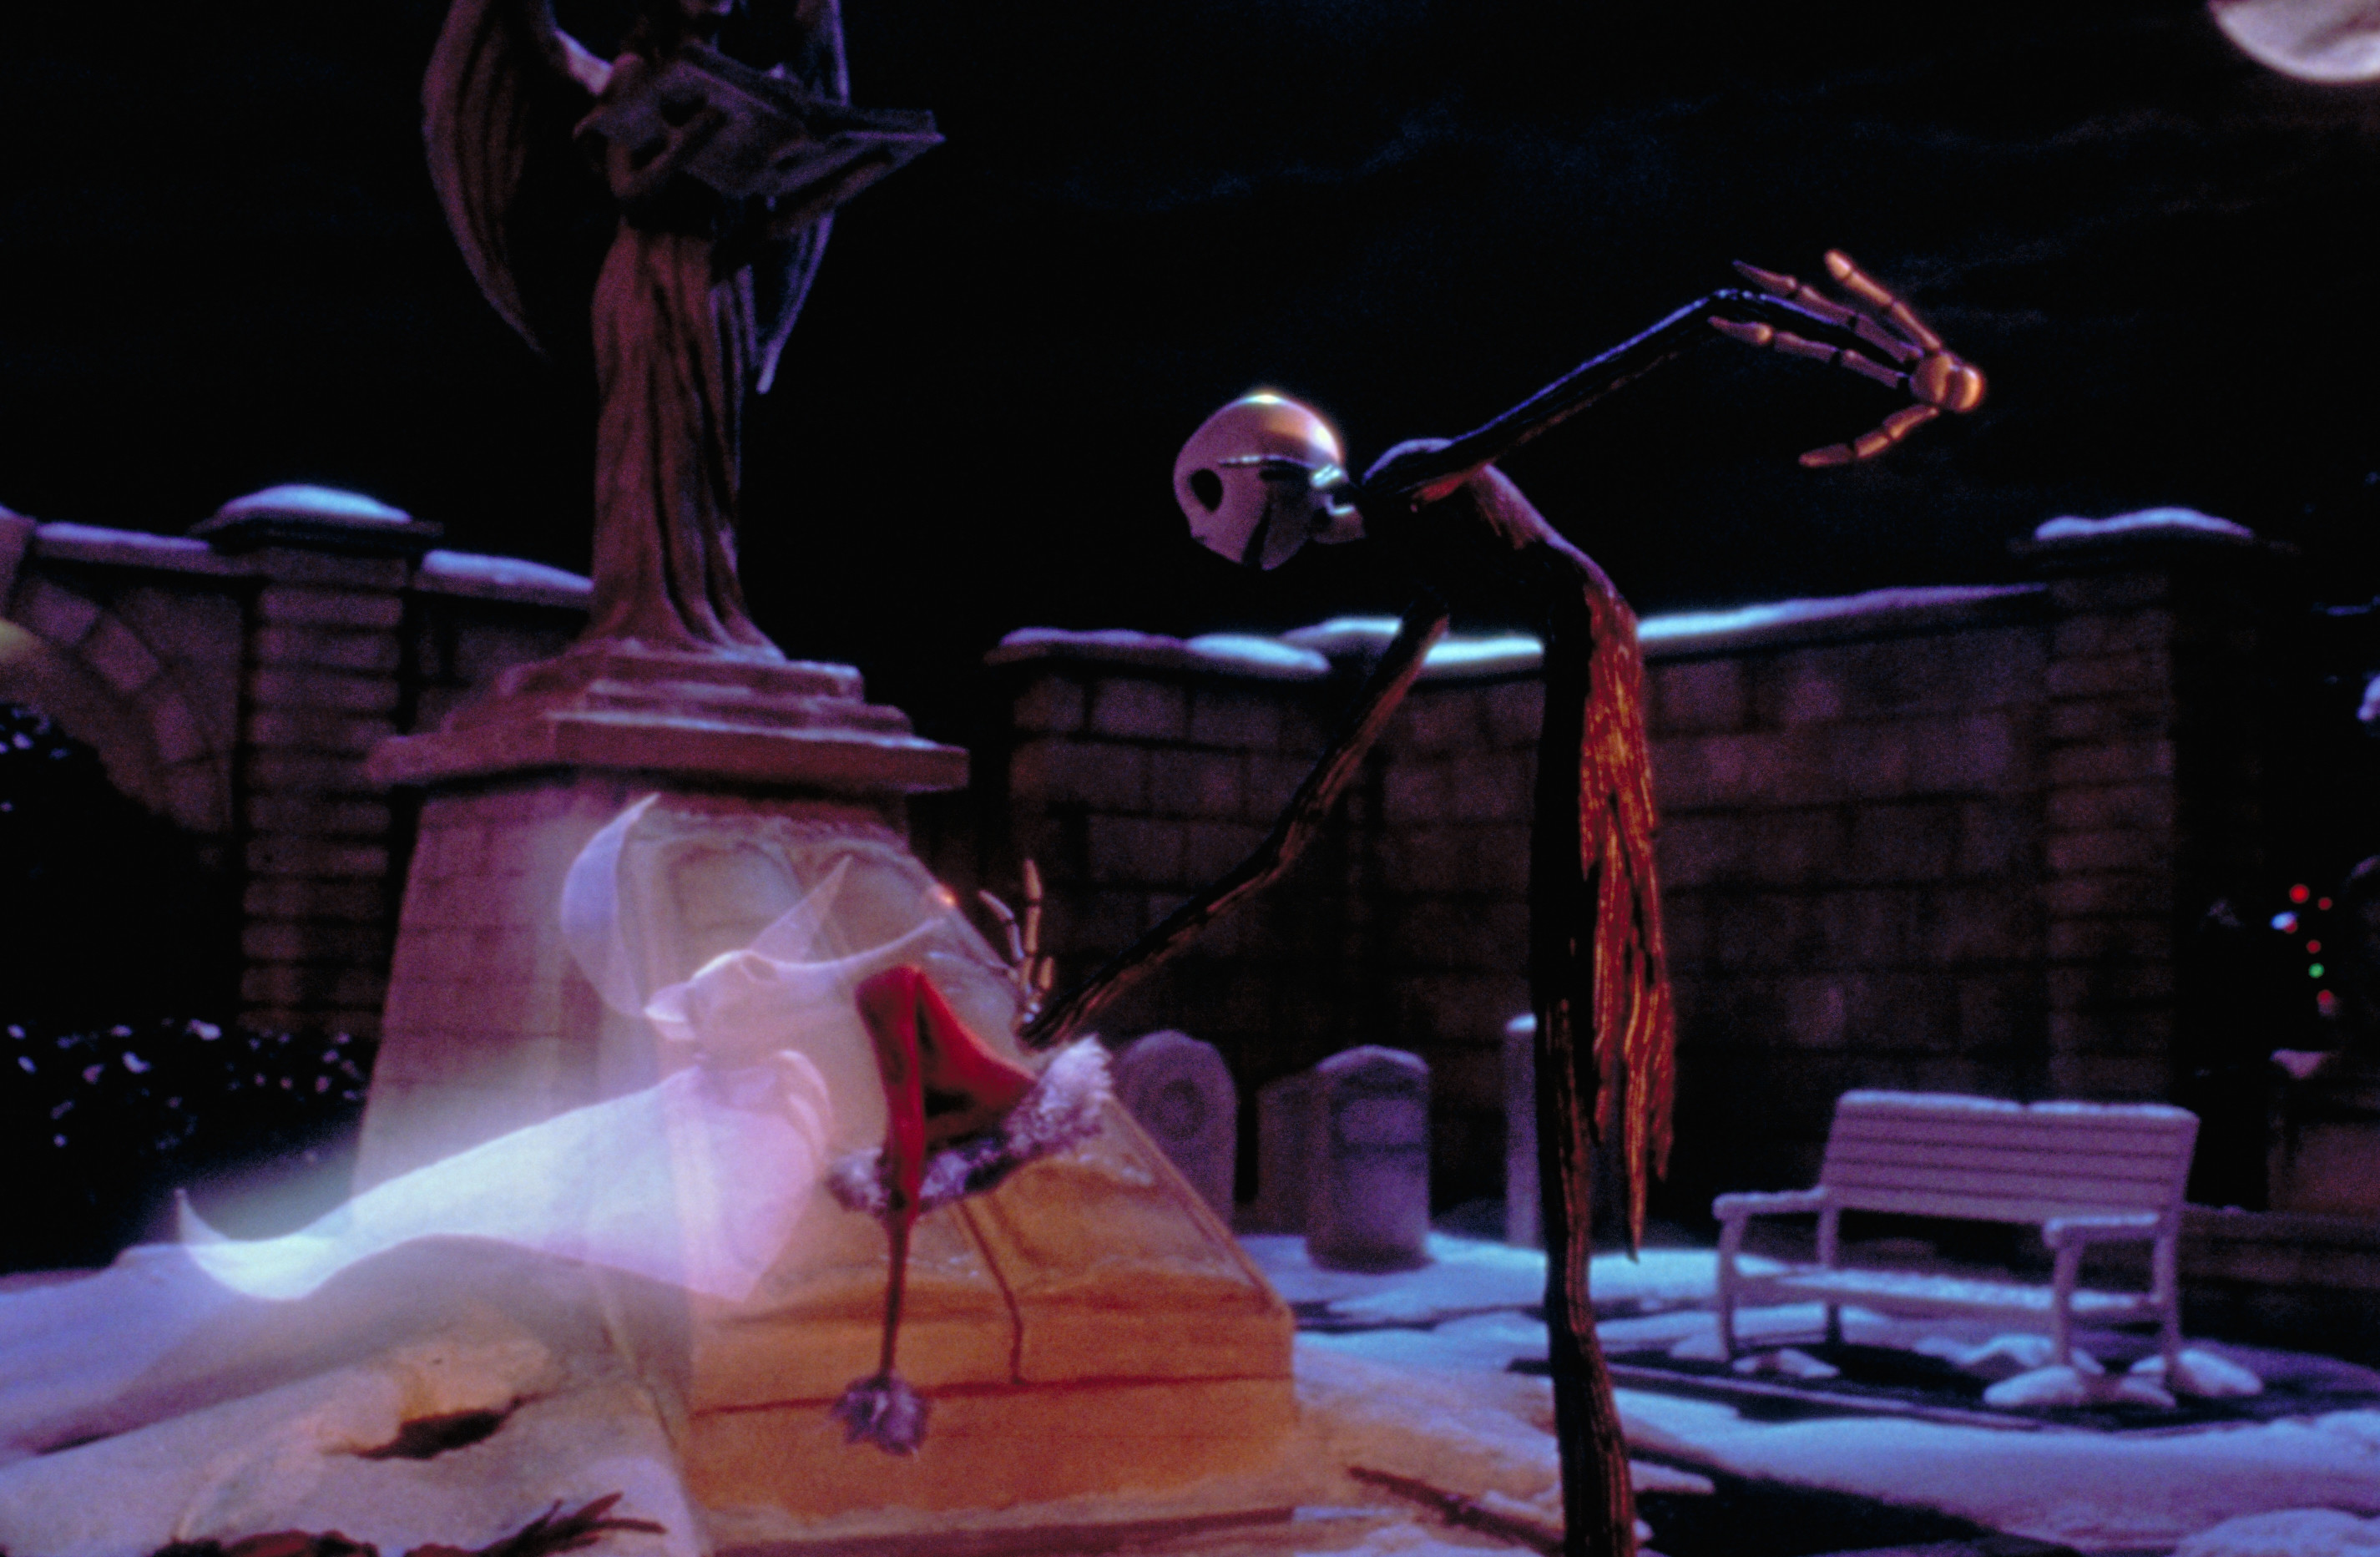 Nightmare before christmas jack skellington and the nightmare before – Zero Jack  Skellington Grave Yard The